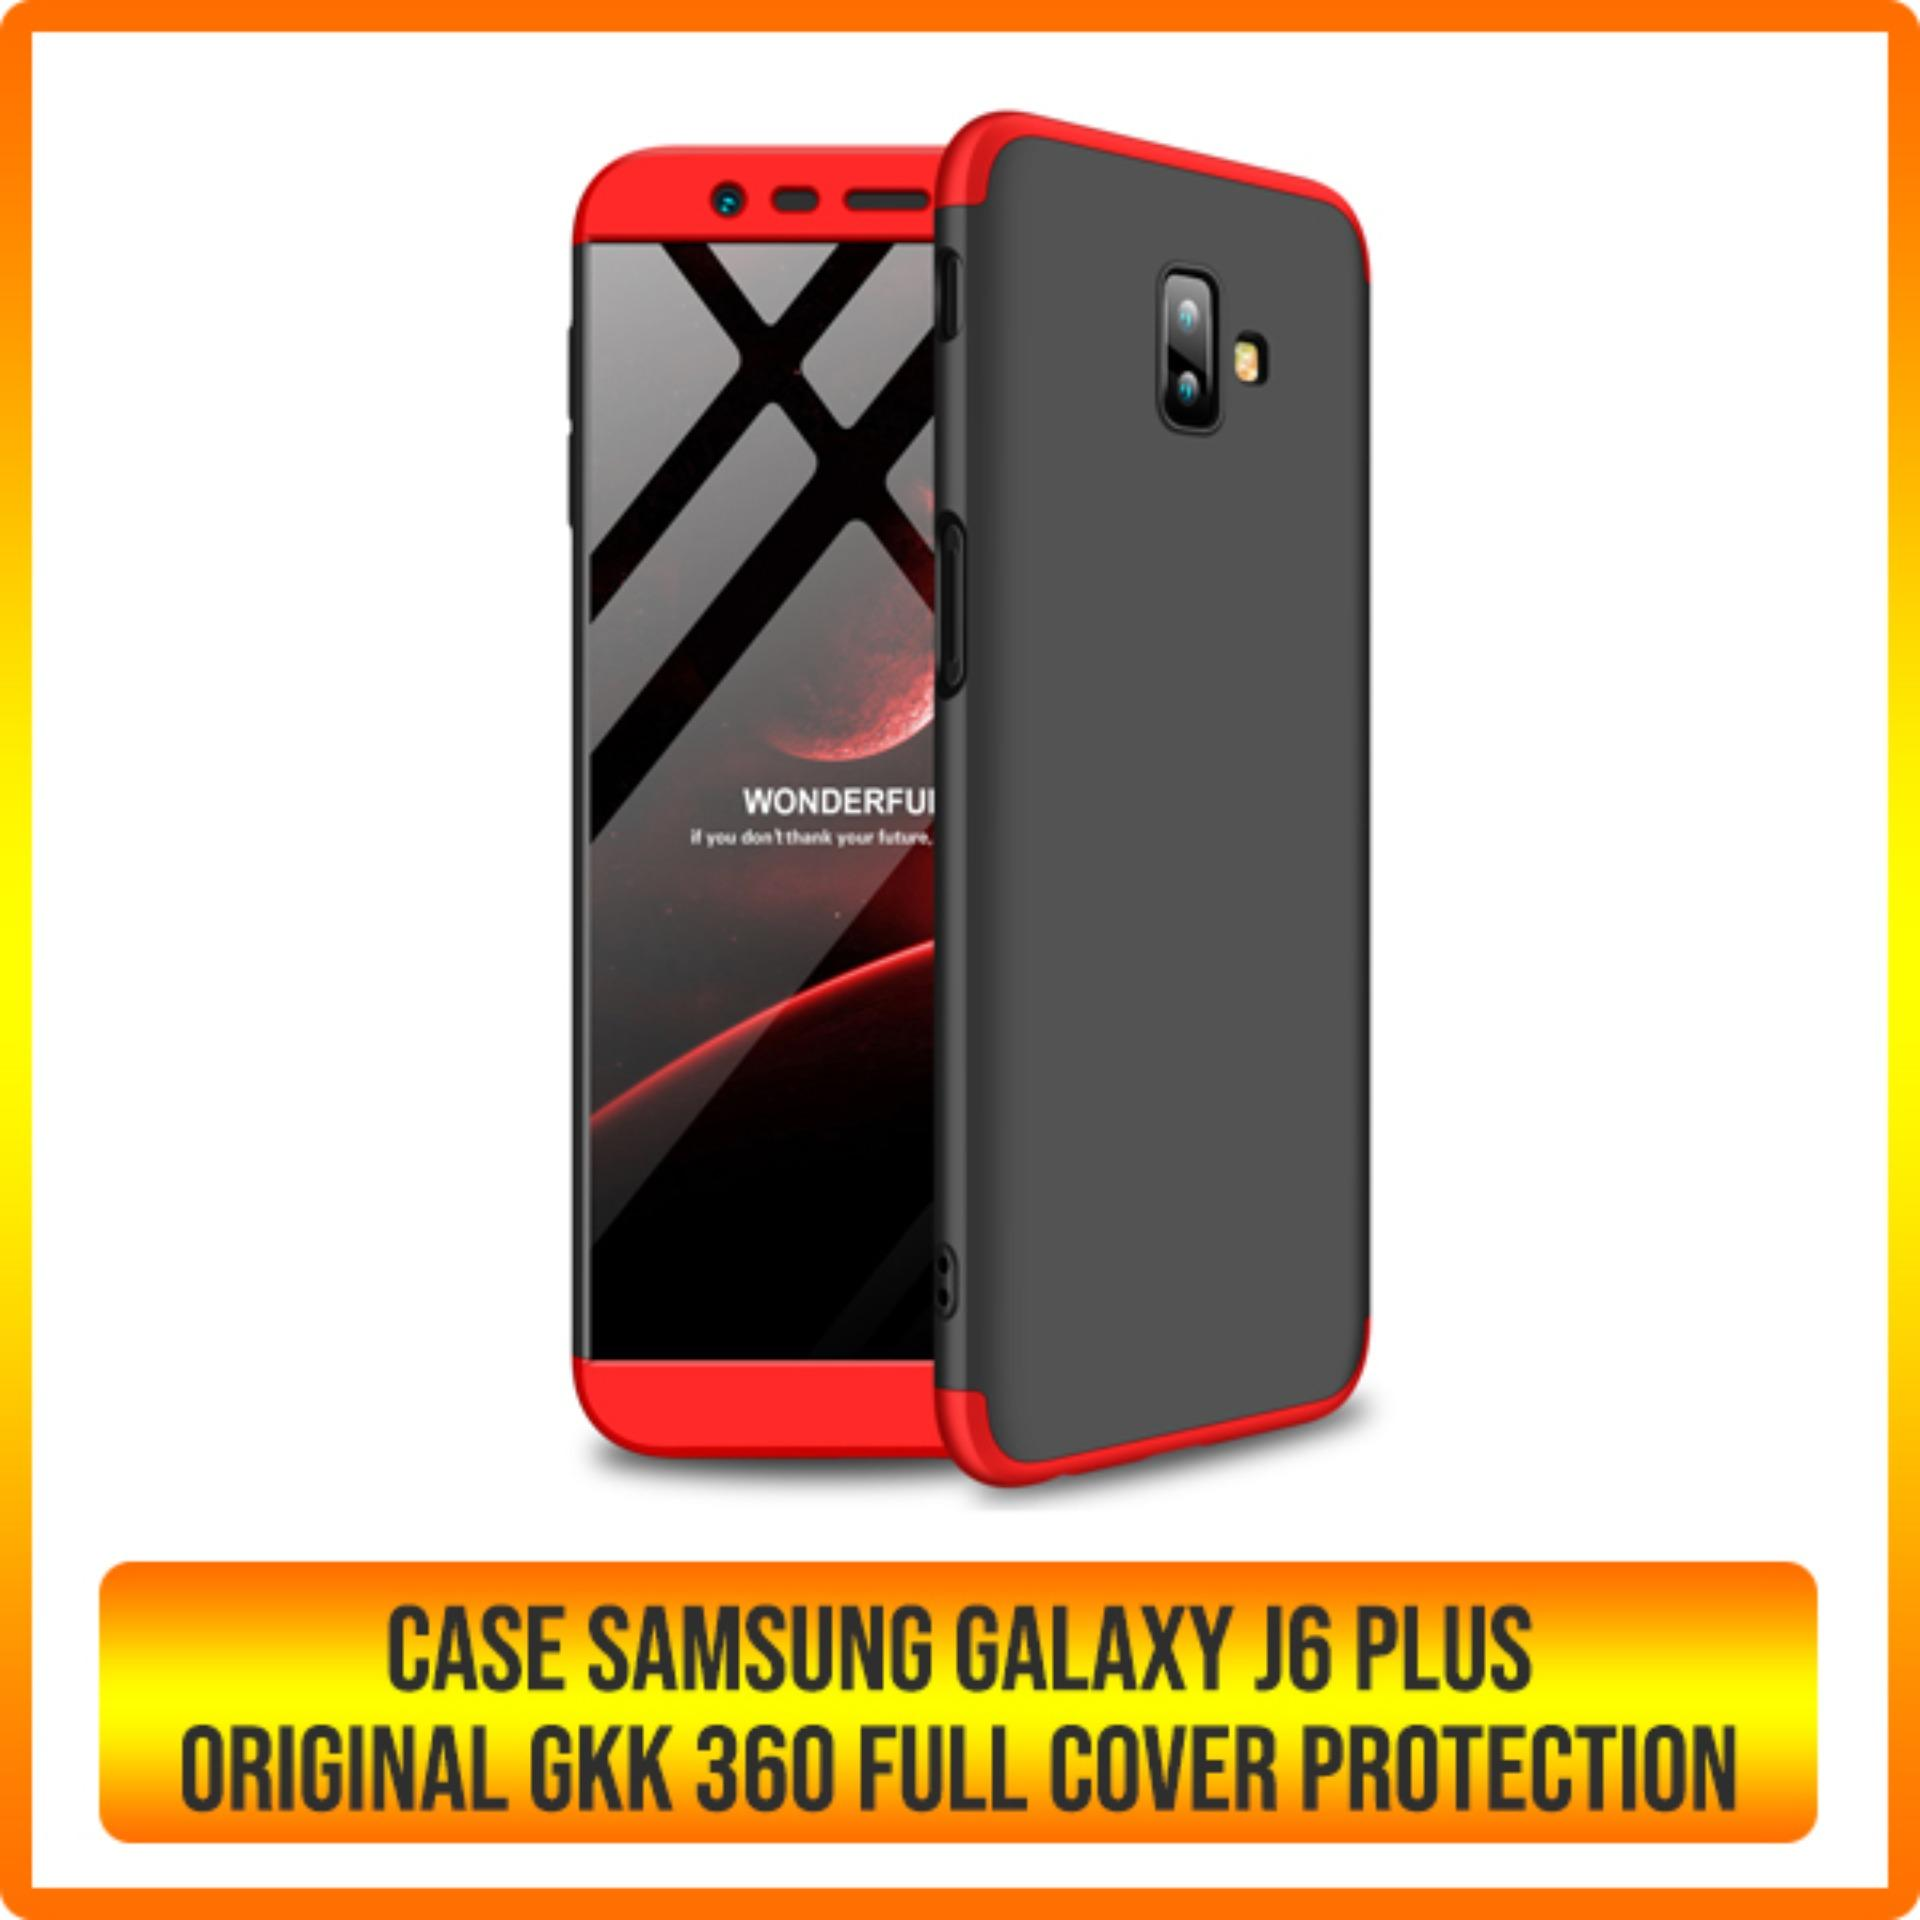 Fitur Hard Case Samsung Galaxy A8 2018 Gkk Full Cover 360 Protection